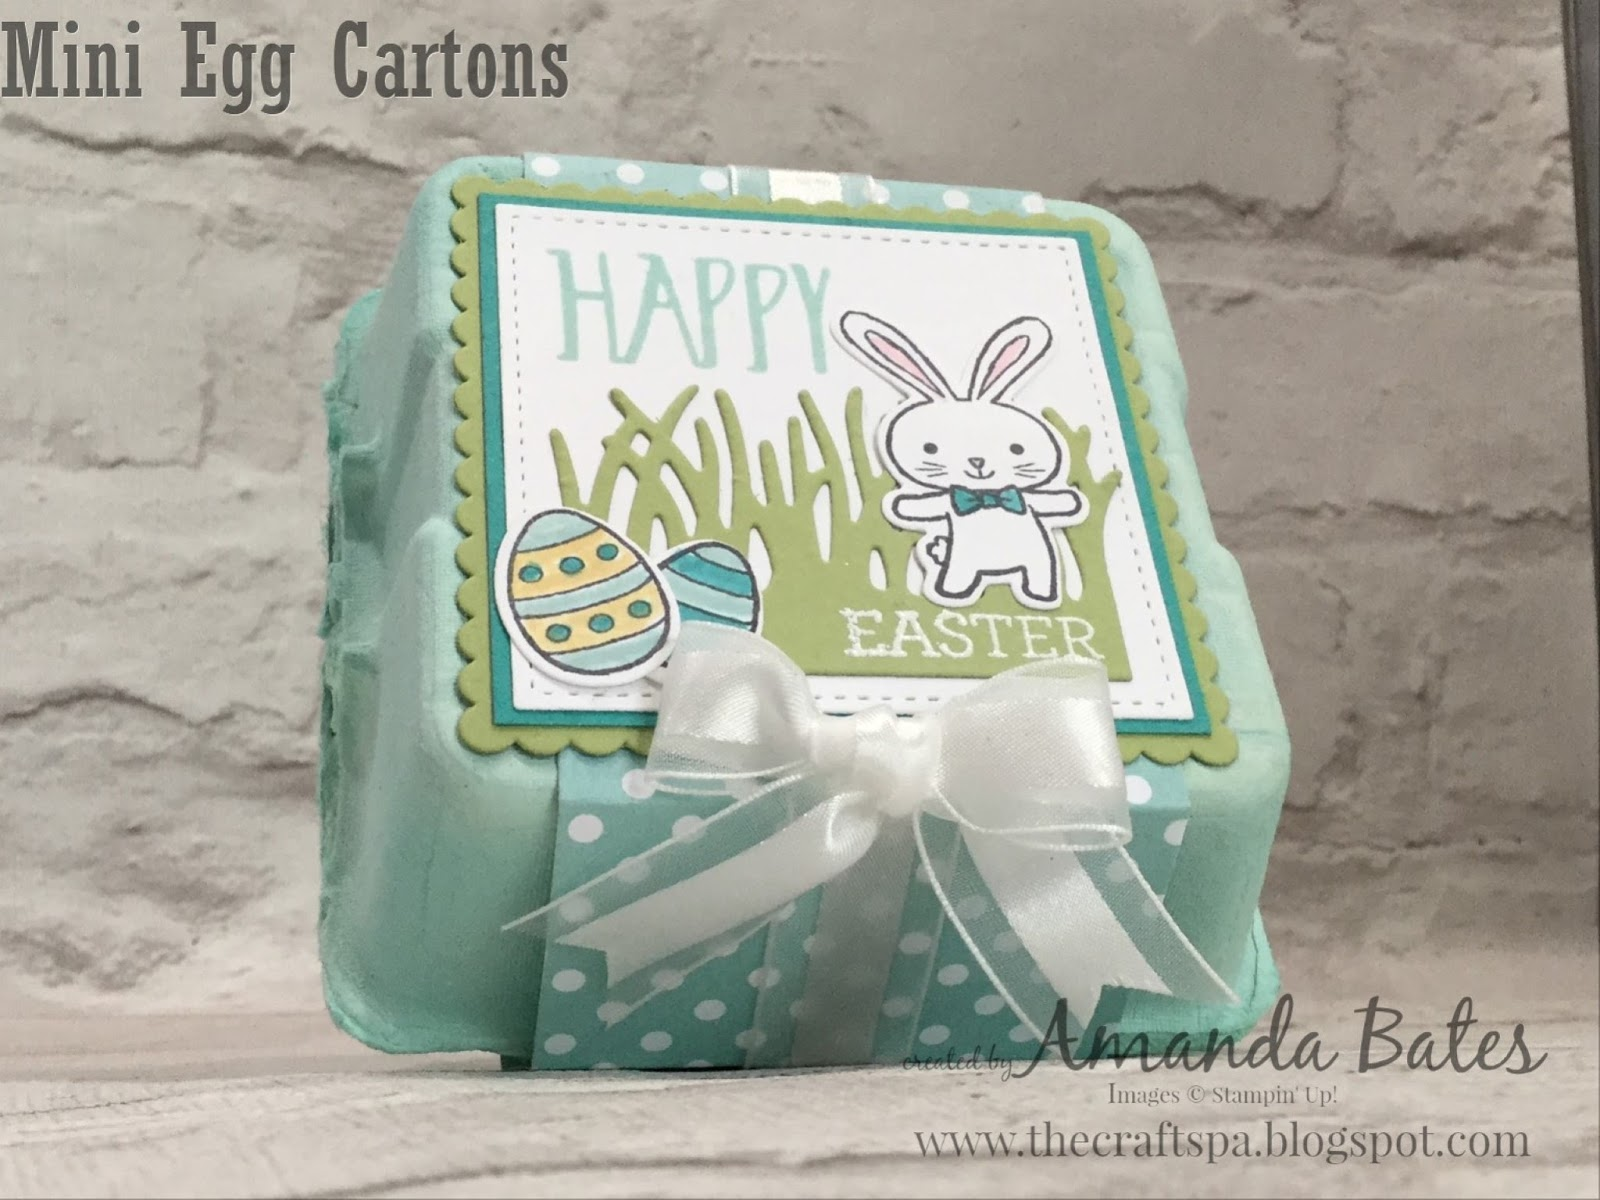 Basket Bunch Mini Egg Carton and Happy